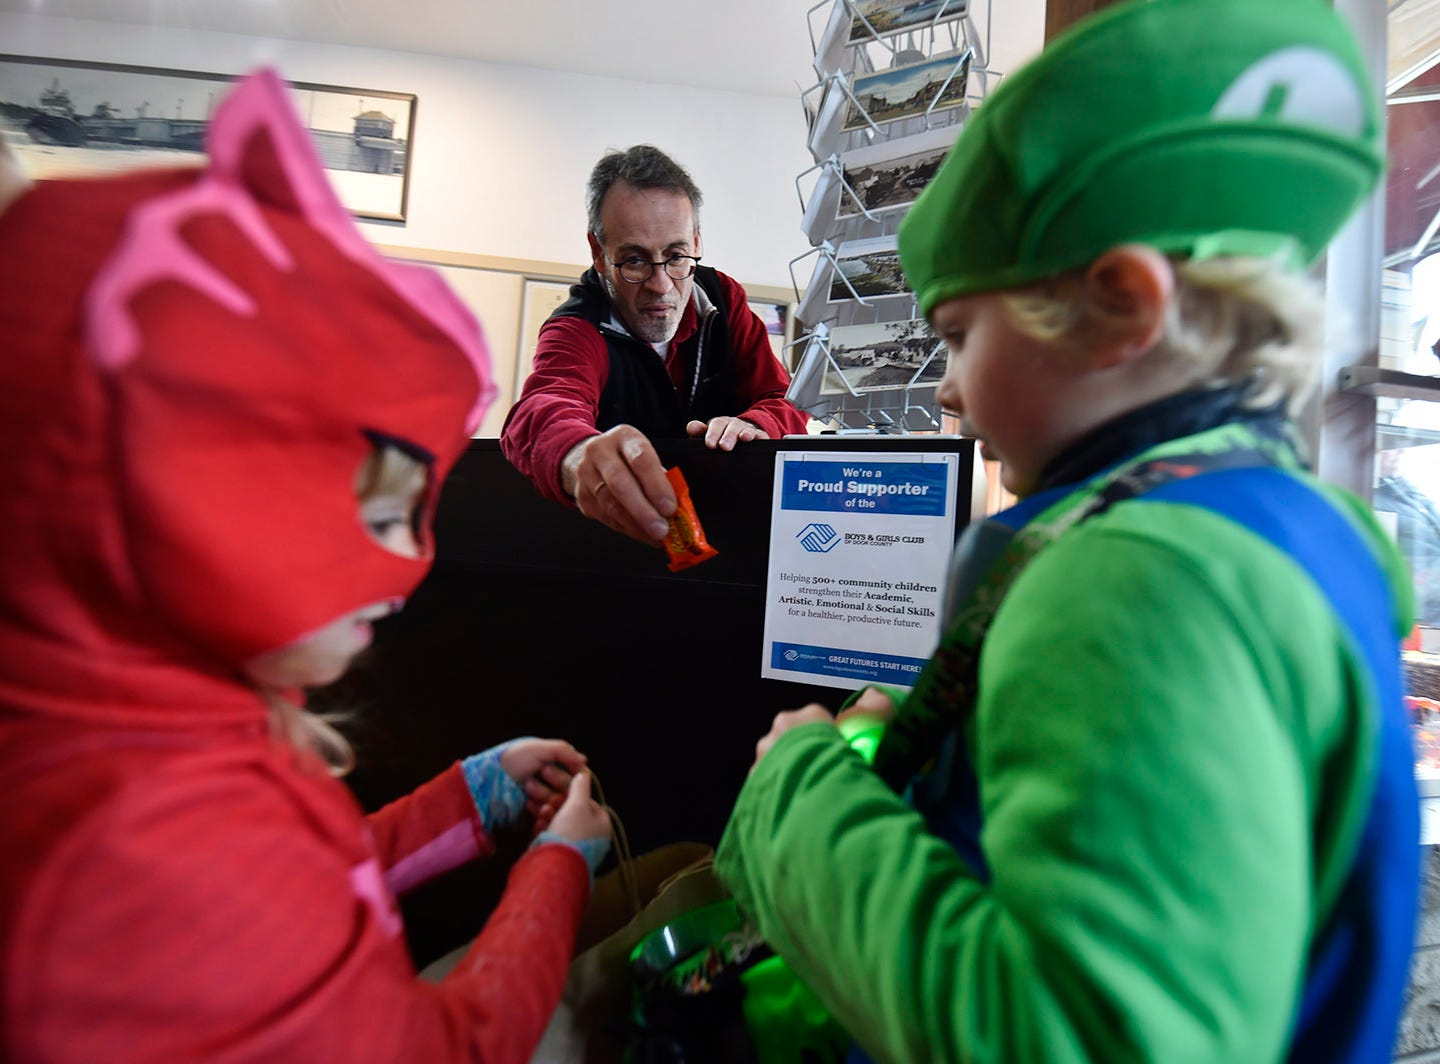 John Maggitti hands out more candy inside Bay Novel Booksellers following the Thrills on Third costume parade on Saturday, Oct. 27, 2018, in Sturgeon Bay. Tina M. Gohr/USA TODAY NETWORK-Wisconsin